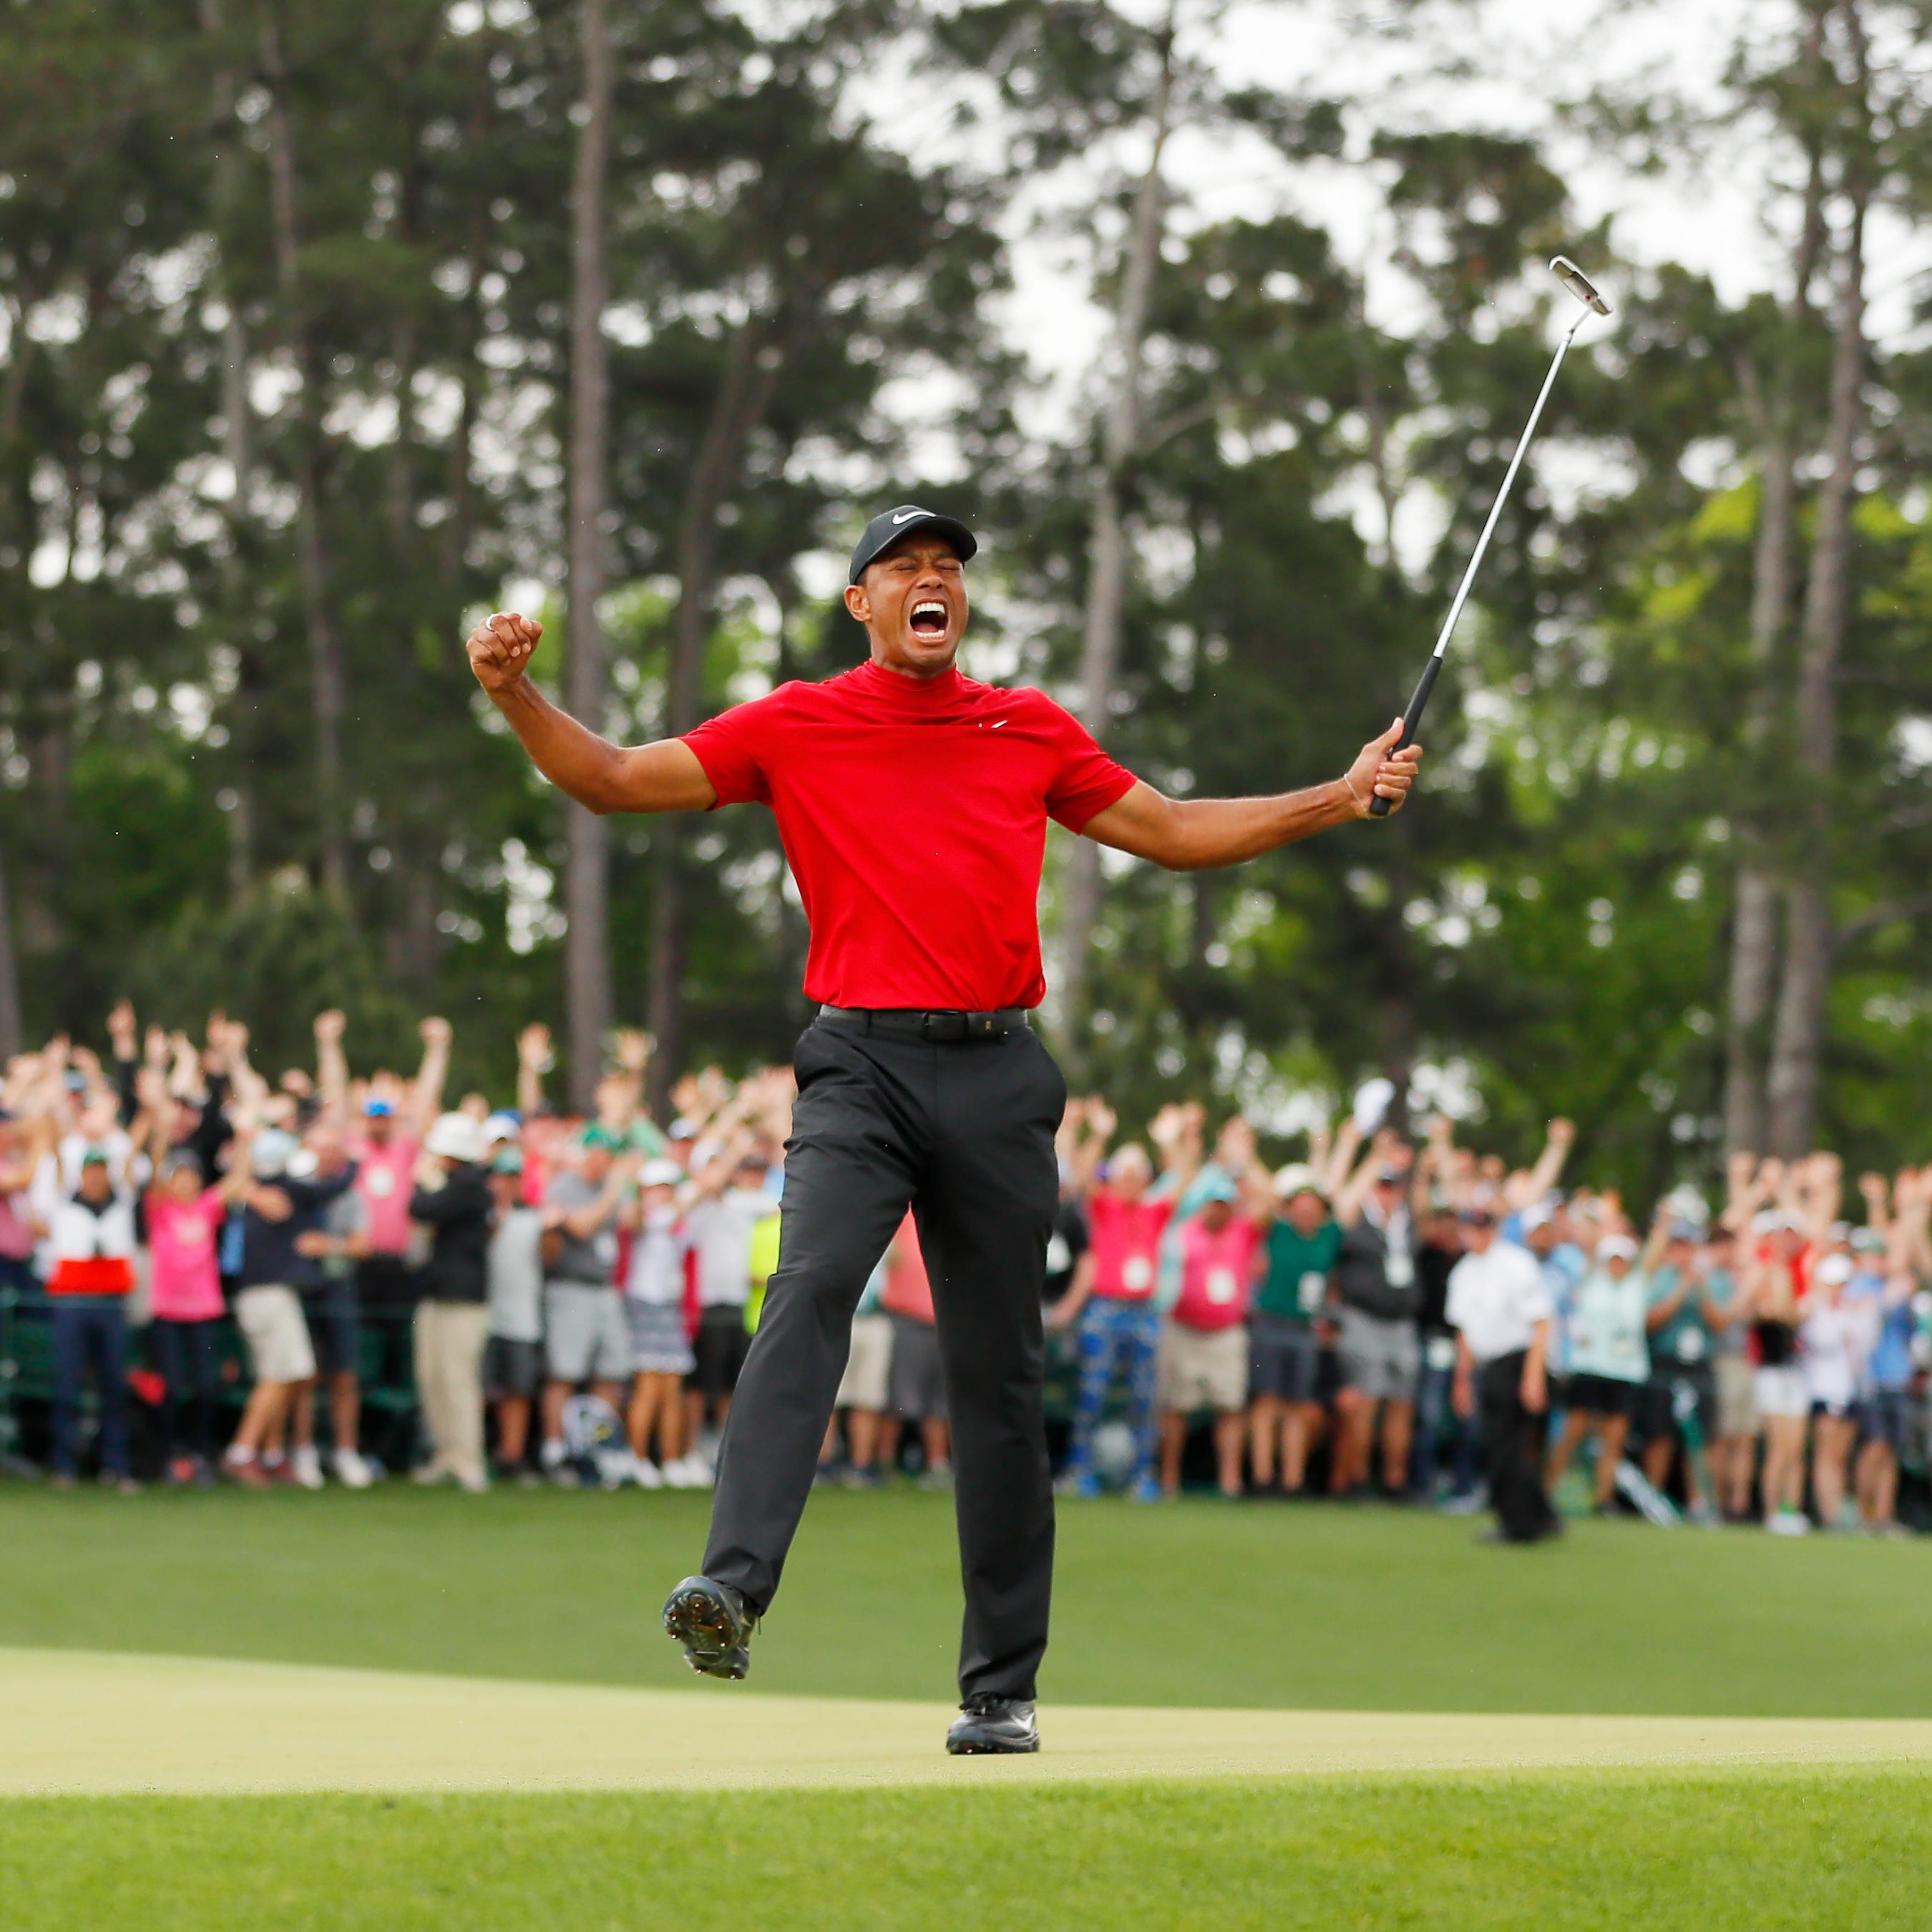 Tiger Woods' Masters win as epic as Jack Nicklaus' in 1986, maybe better